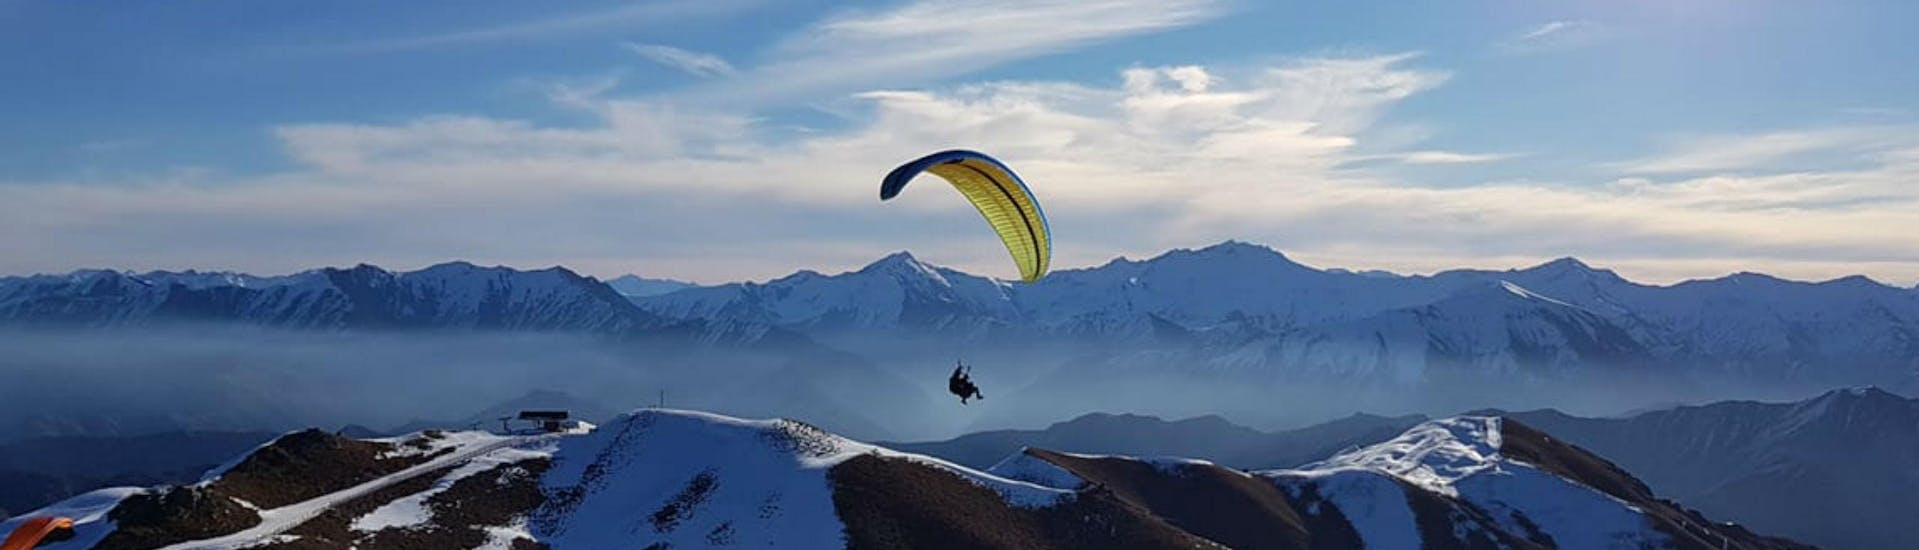 A paraglider from Skytrek Queenstown is flying over snow-capped mountains while Paragliding in Queenstown - Winter.